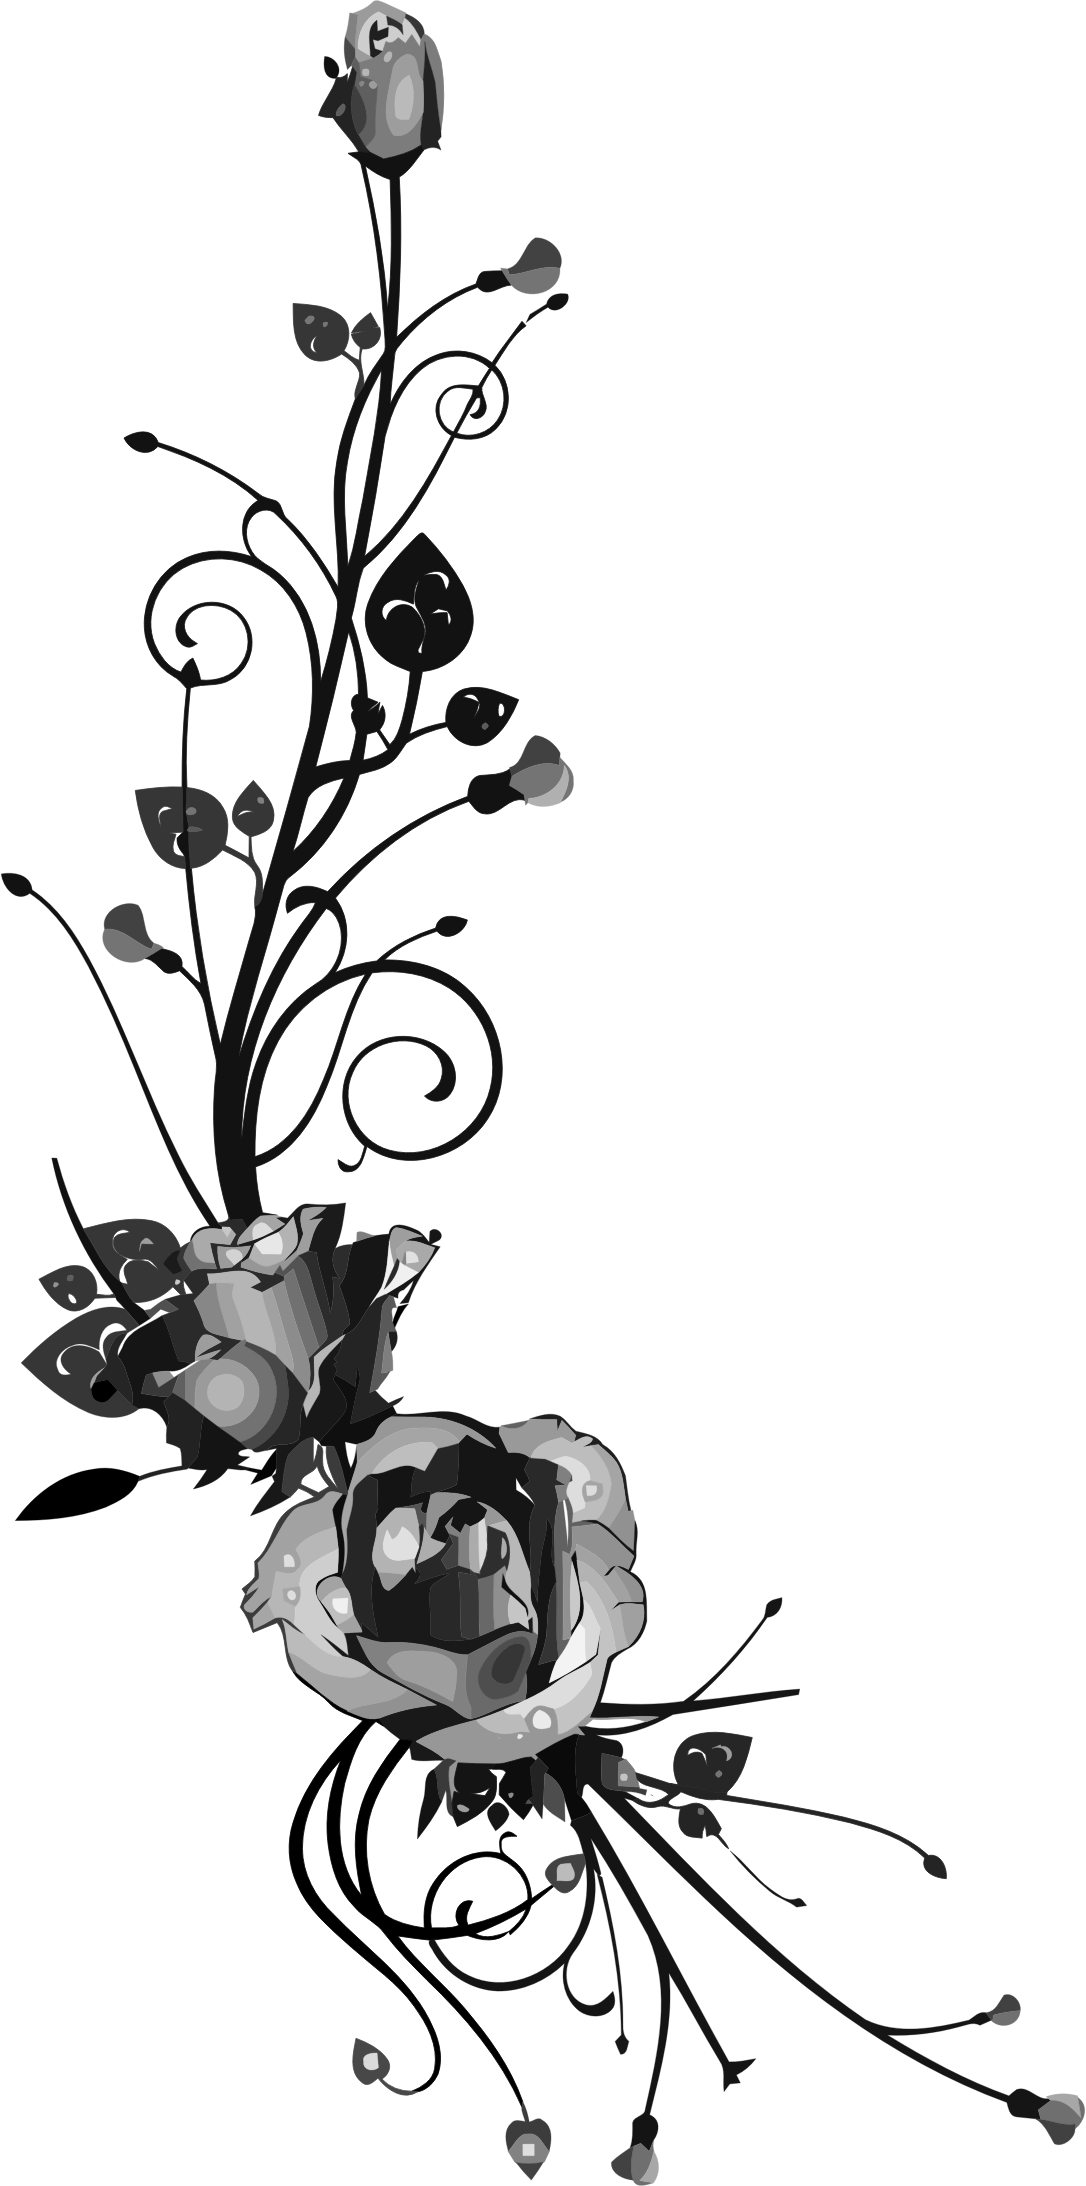 Rose flower clipart black and white png freeuse download Clipart - Rose Floral Flourish 15 png freeuse download